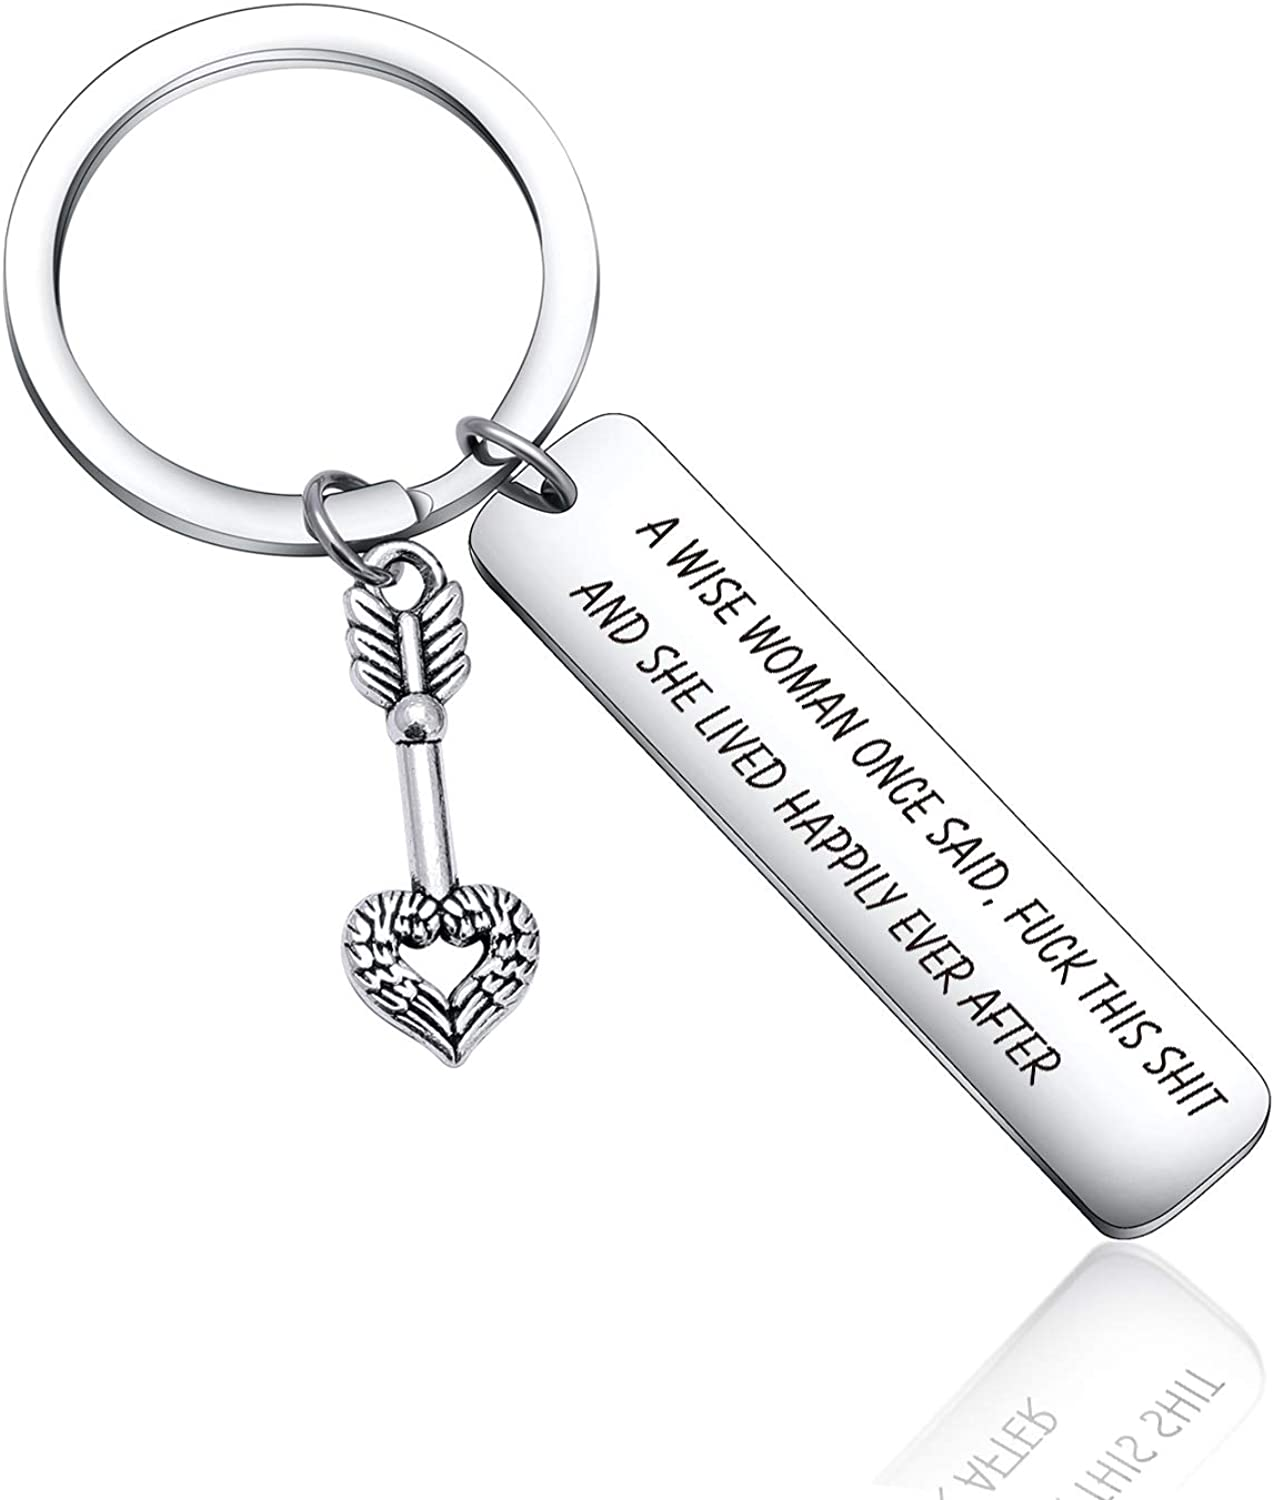 Women Motivational Gift Inspirational Keychain for Friends Coworkers Sister Christmas Keychain Birthday Jewelry